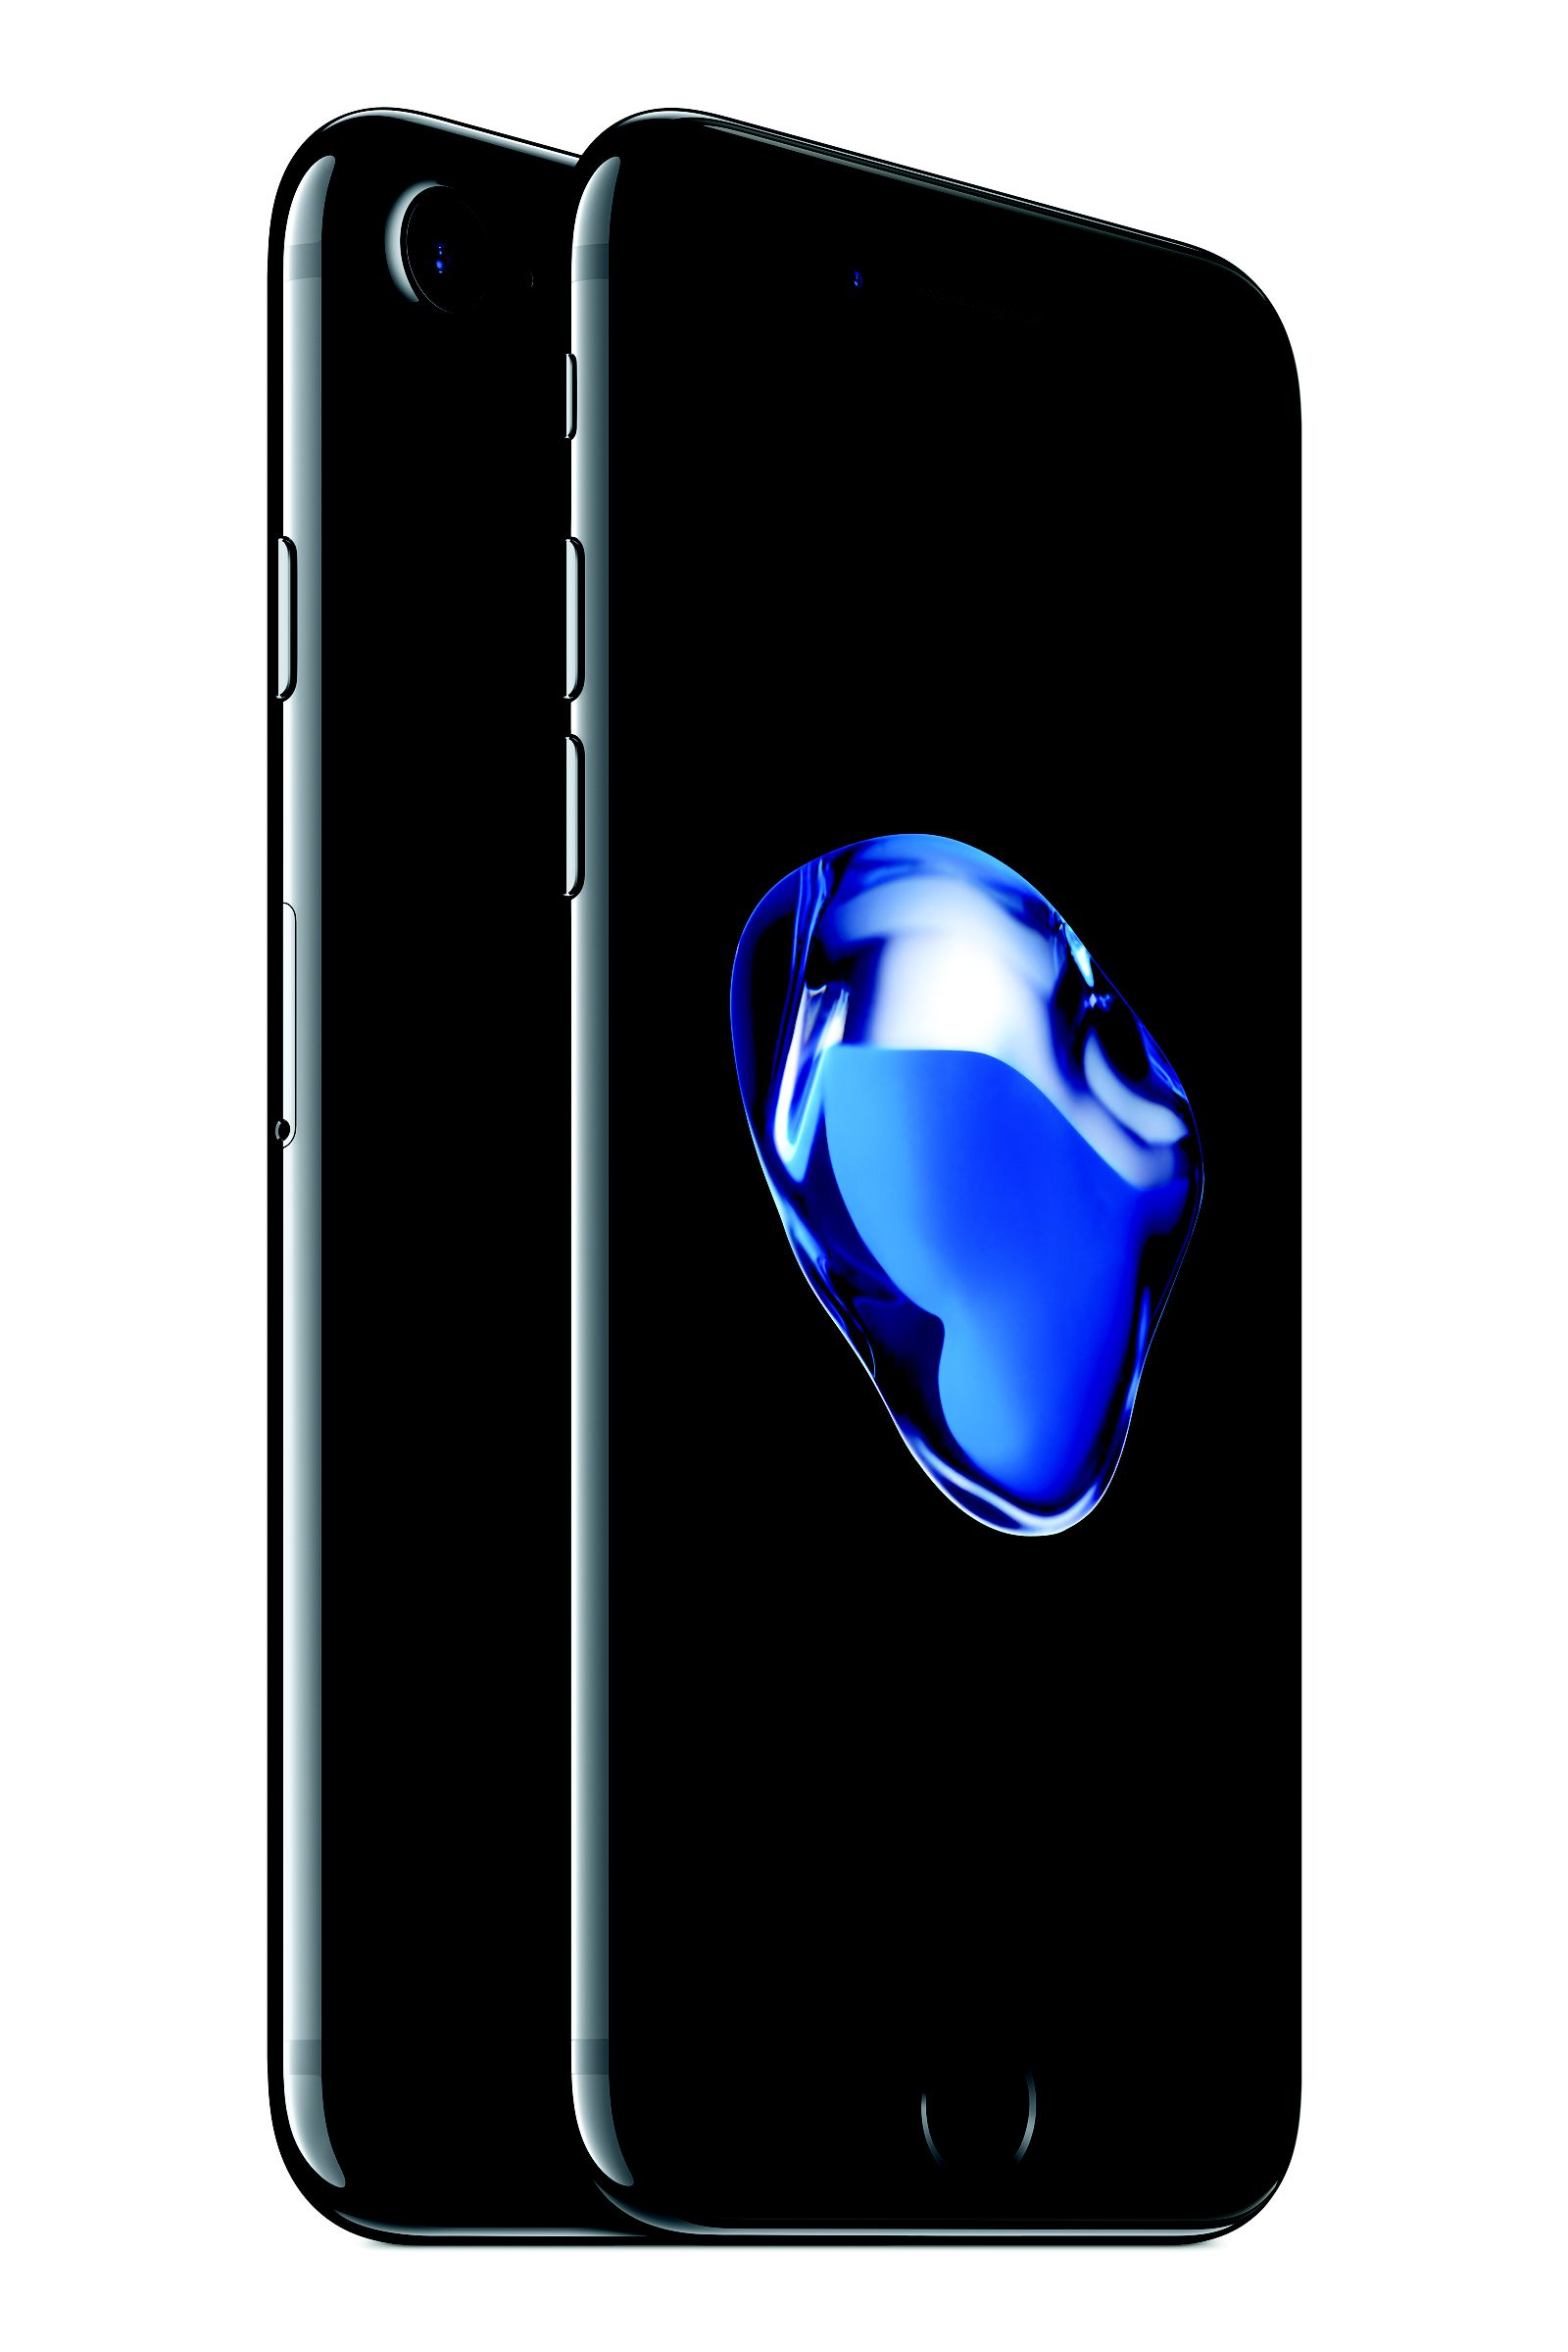 Apple iPhone 7 128GB kártyafüggetlen mobiltelefon kozmoszfekete